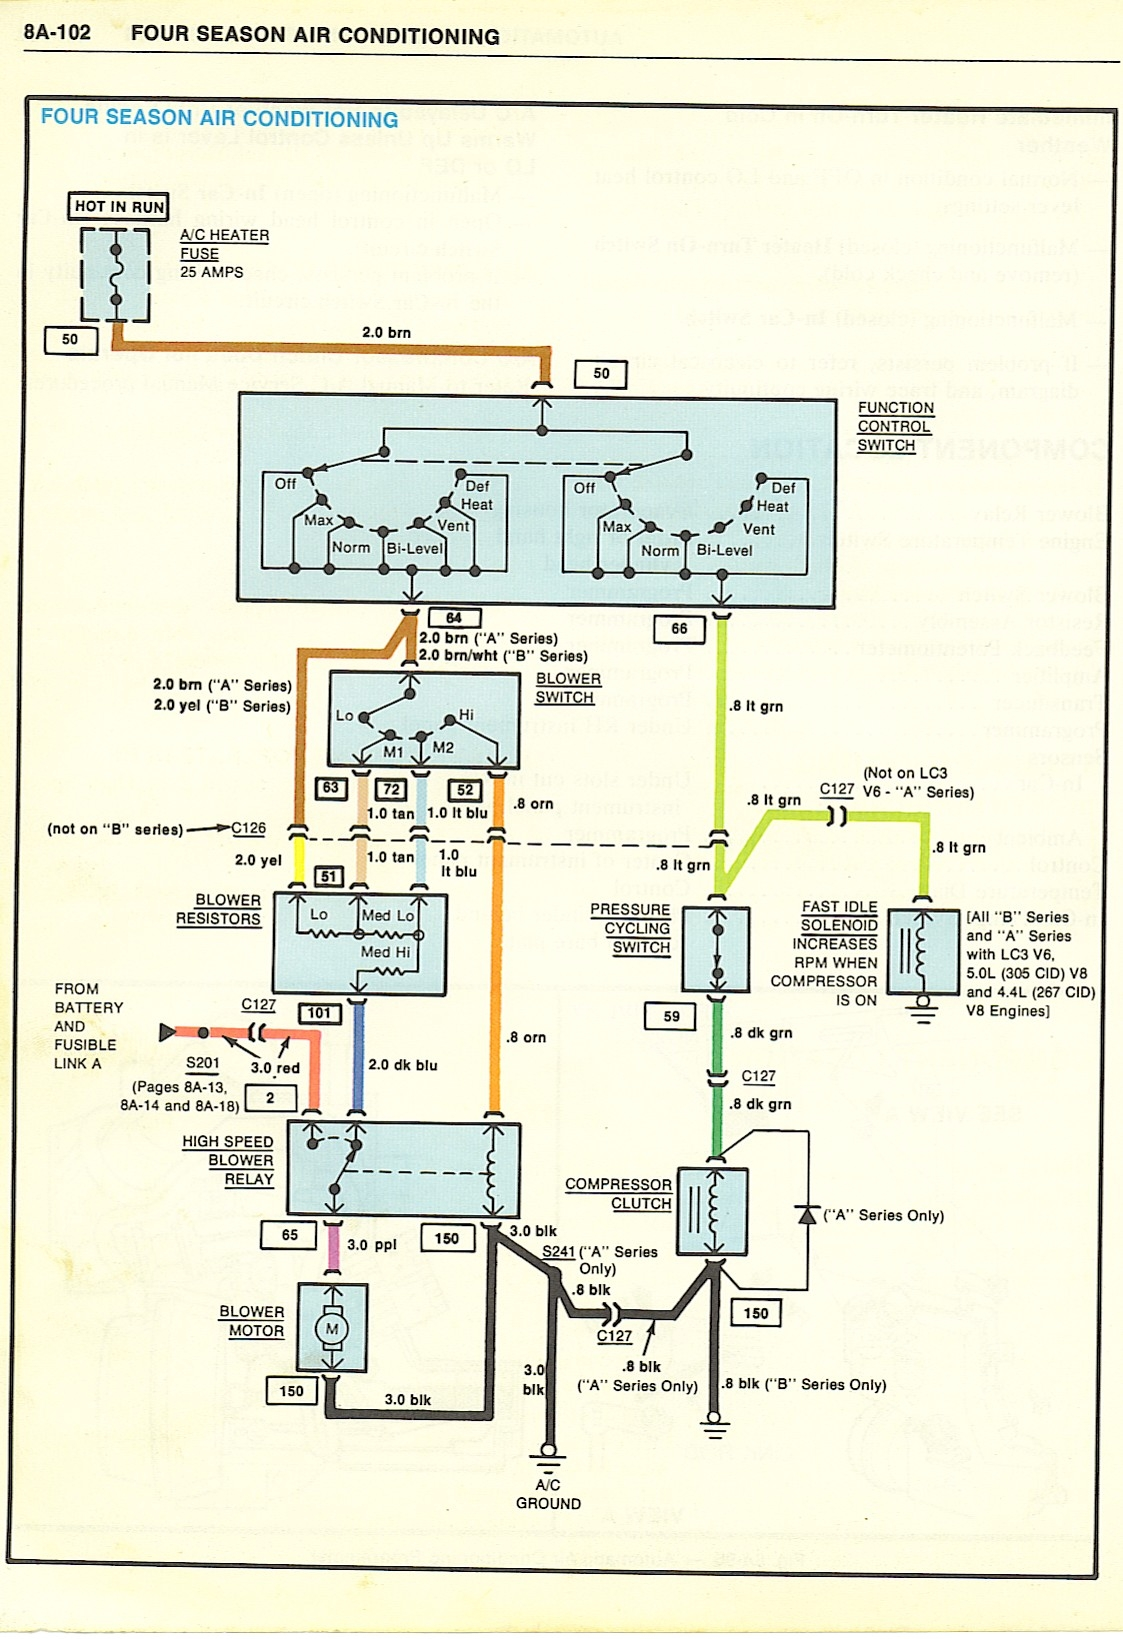 1968 FourSeasonAirConditioner chevy diagrams 1984 oldsmobile delta 88 wiring diagram at soozxer.org